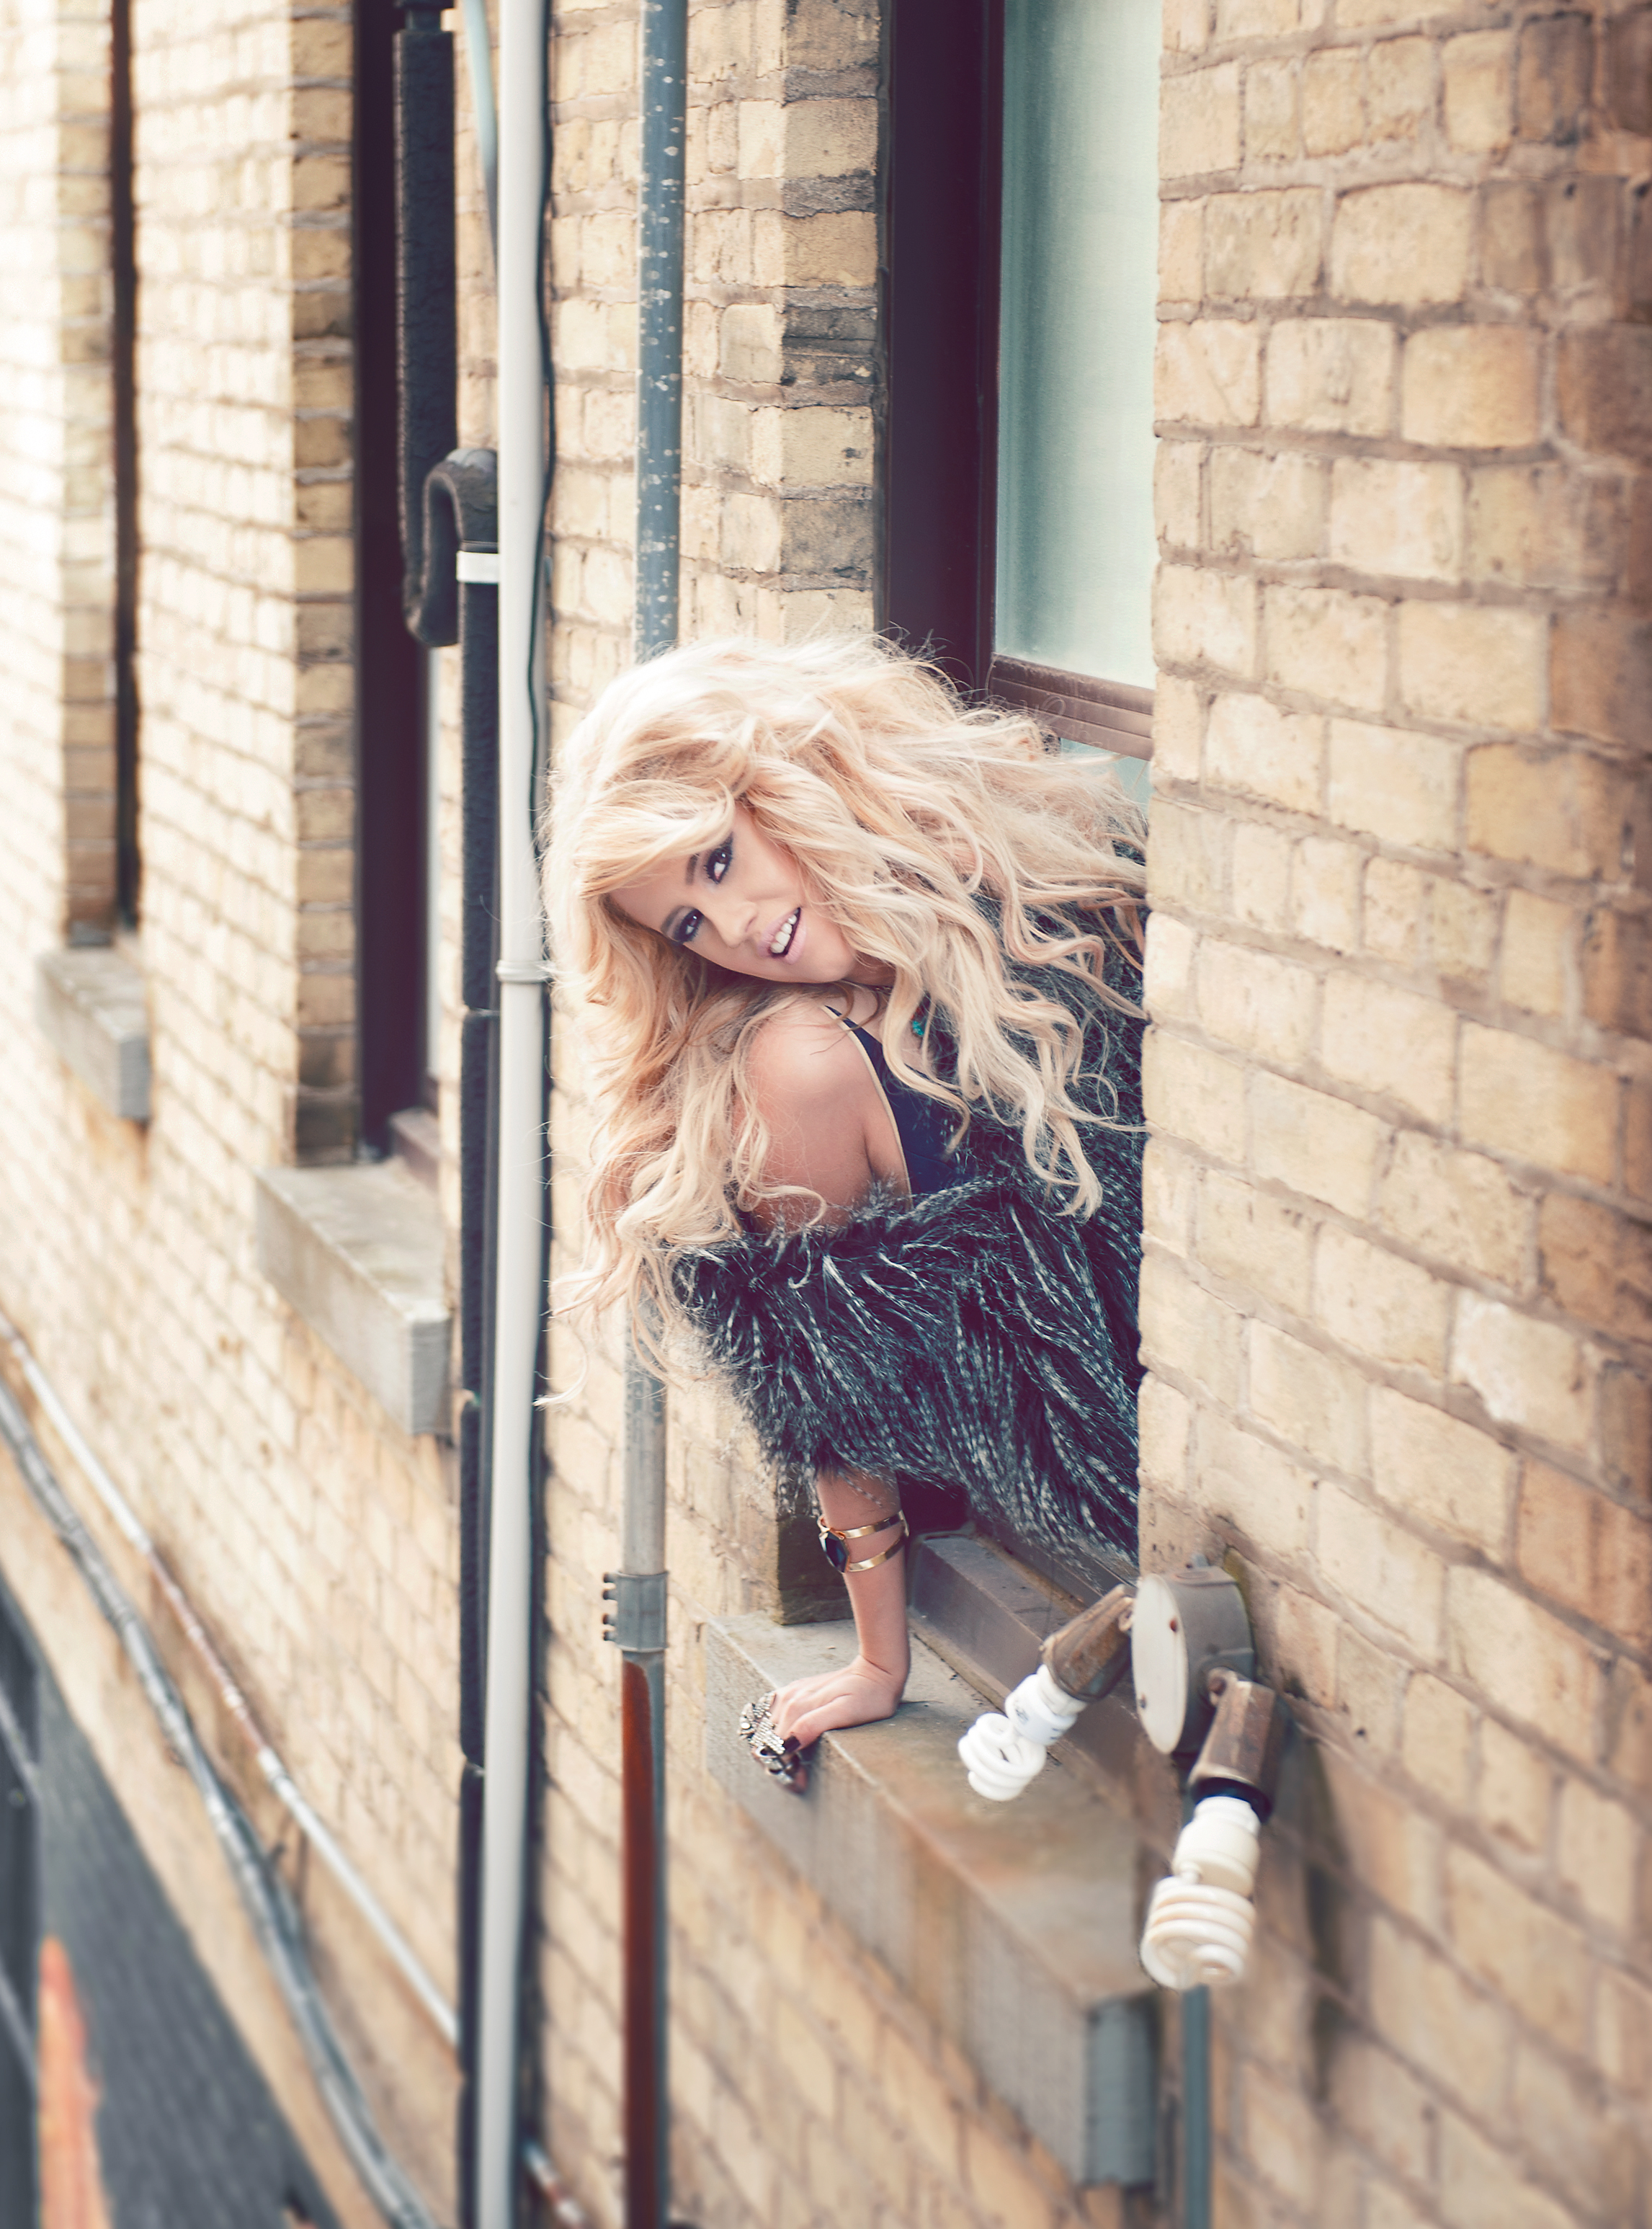 This was one of my favourite locations.. Here I had to brave the deep snow on the rooftop to get down to the landing on the fire escape, and shoot Cassidy as she leaned out the window of the loft for a fashion/glamour kind of look.